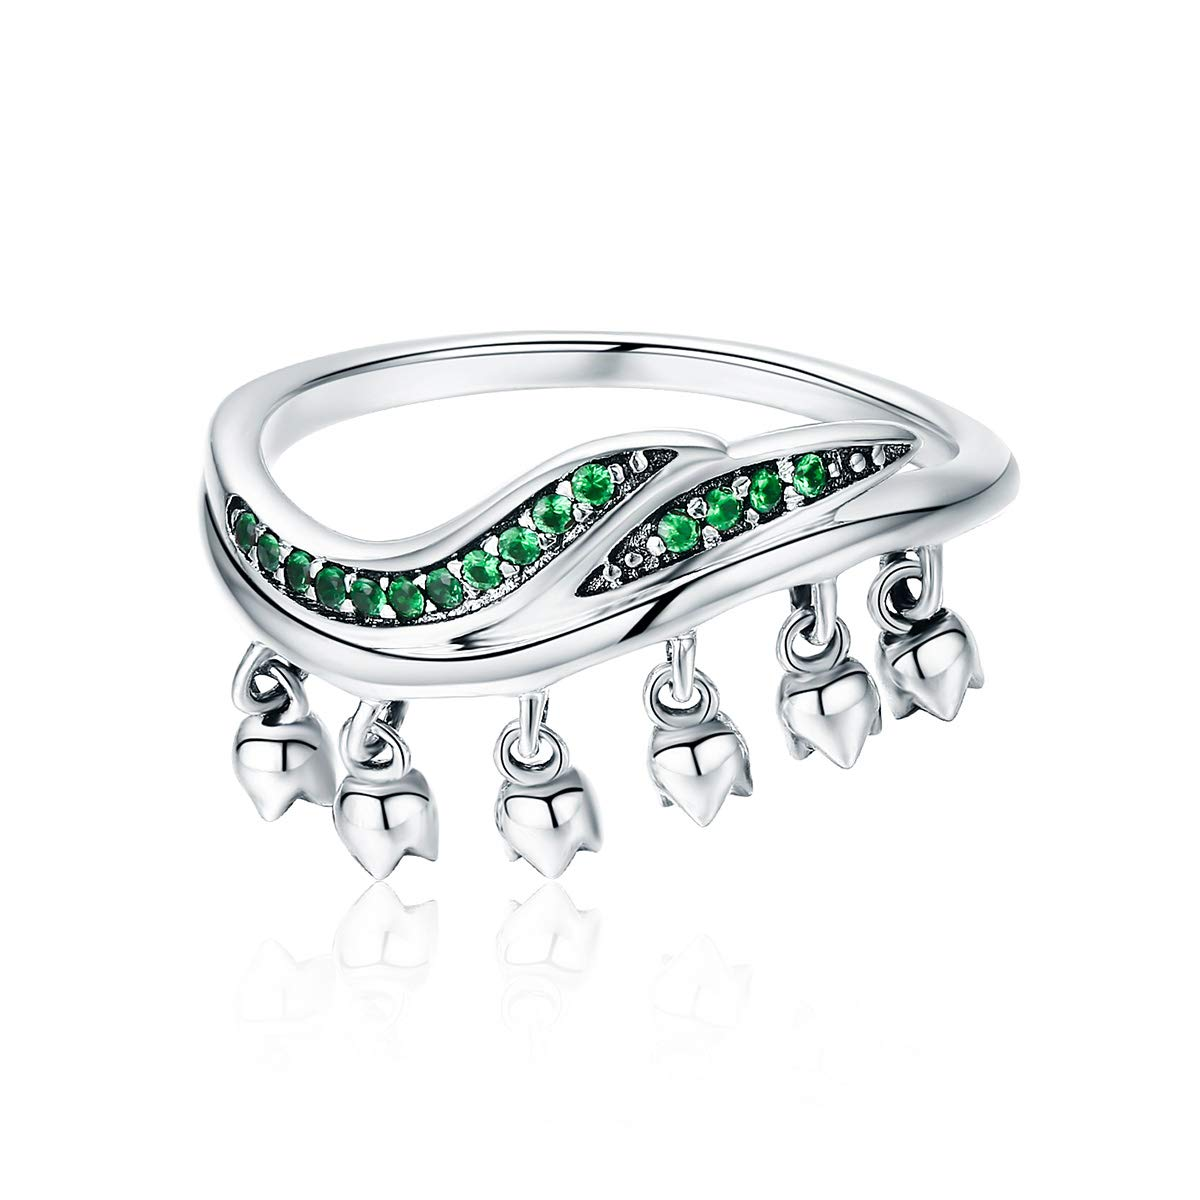 DALARAN Tree of Life Rings Sterling Silver Band for Women Emerald Leaves Wedding Engagement Solitaire Ring